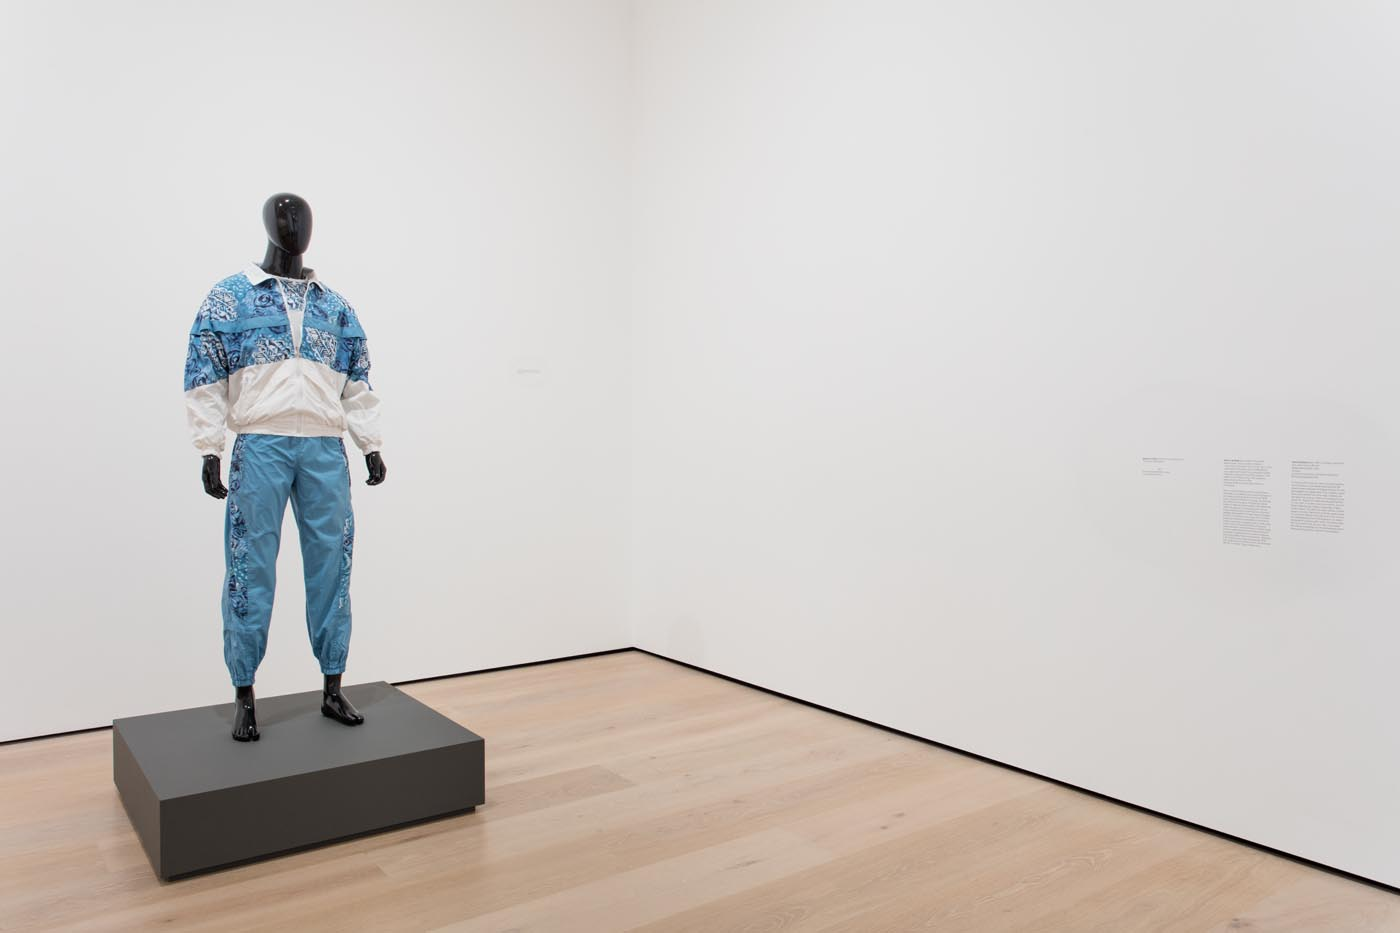 <p>exhibition view with works by gerlach en koop and Willem de Rooij<br />photo: Brian Forrest, Image courtesy of the Hammer Museum</p>